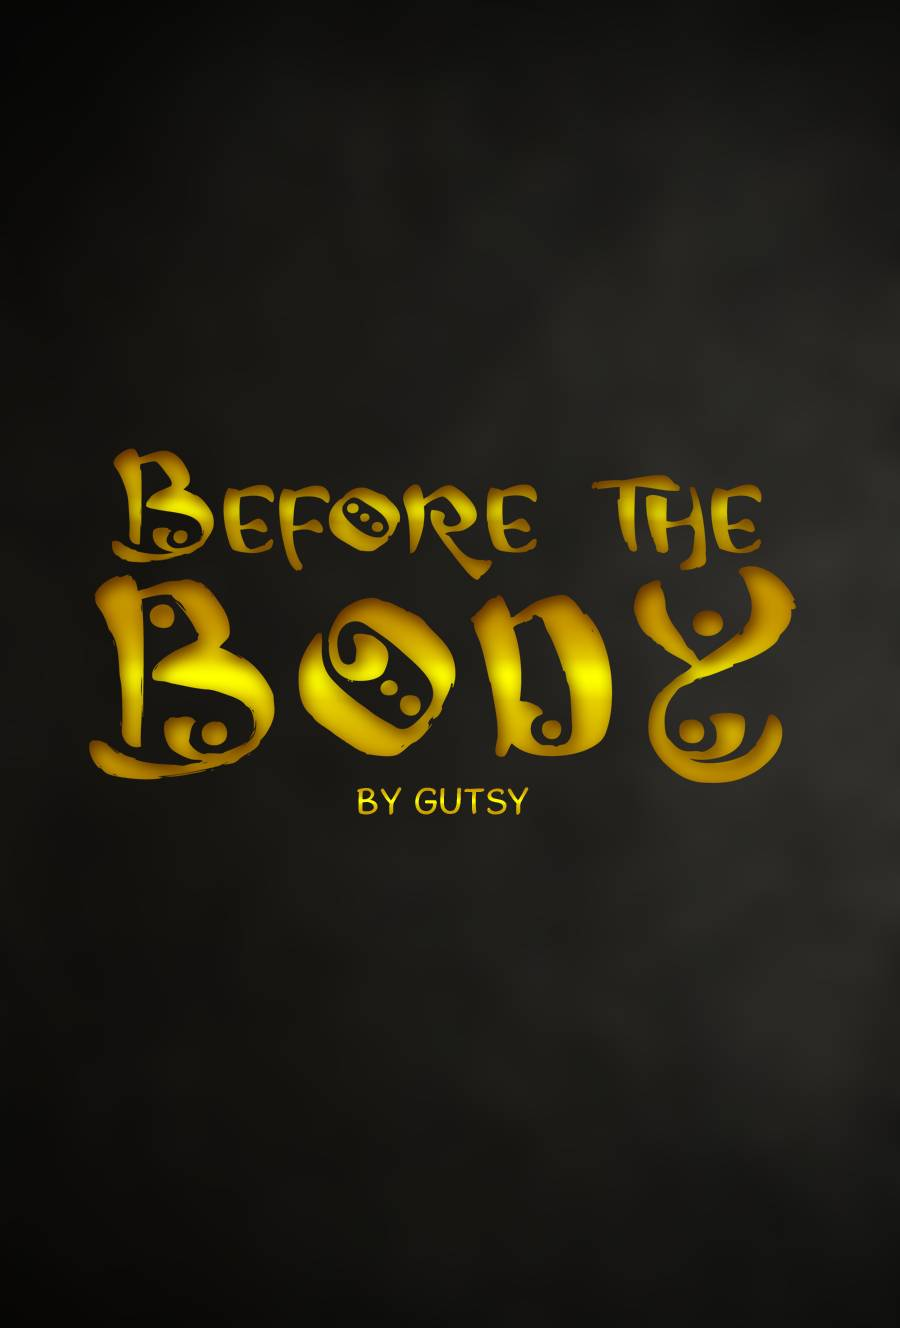 Before The Body- Gutsy image 1